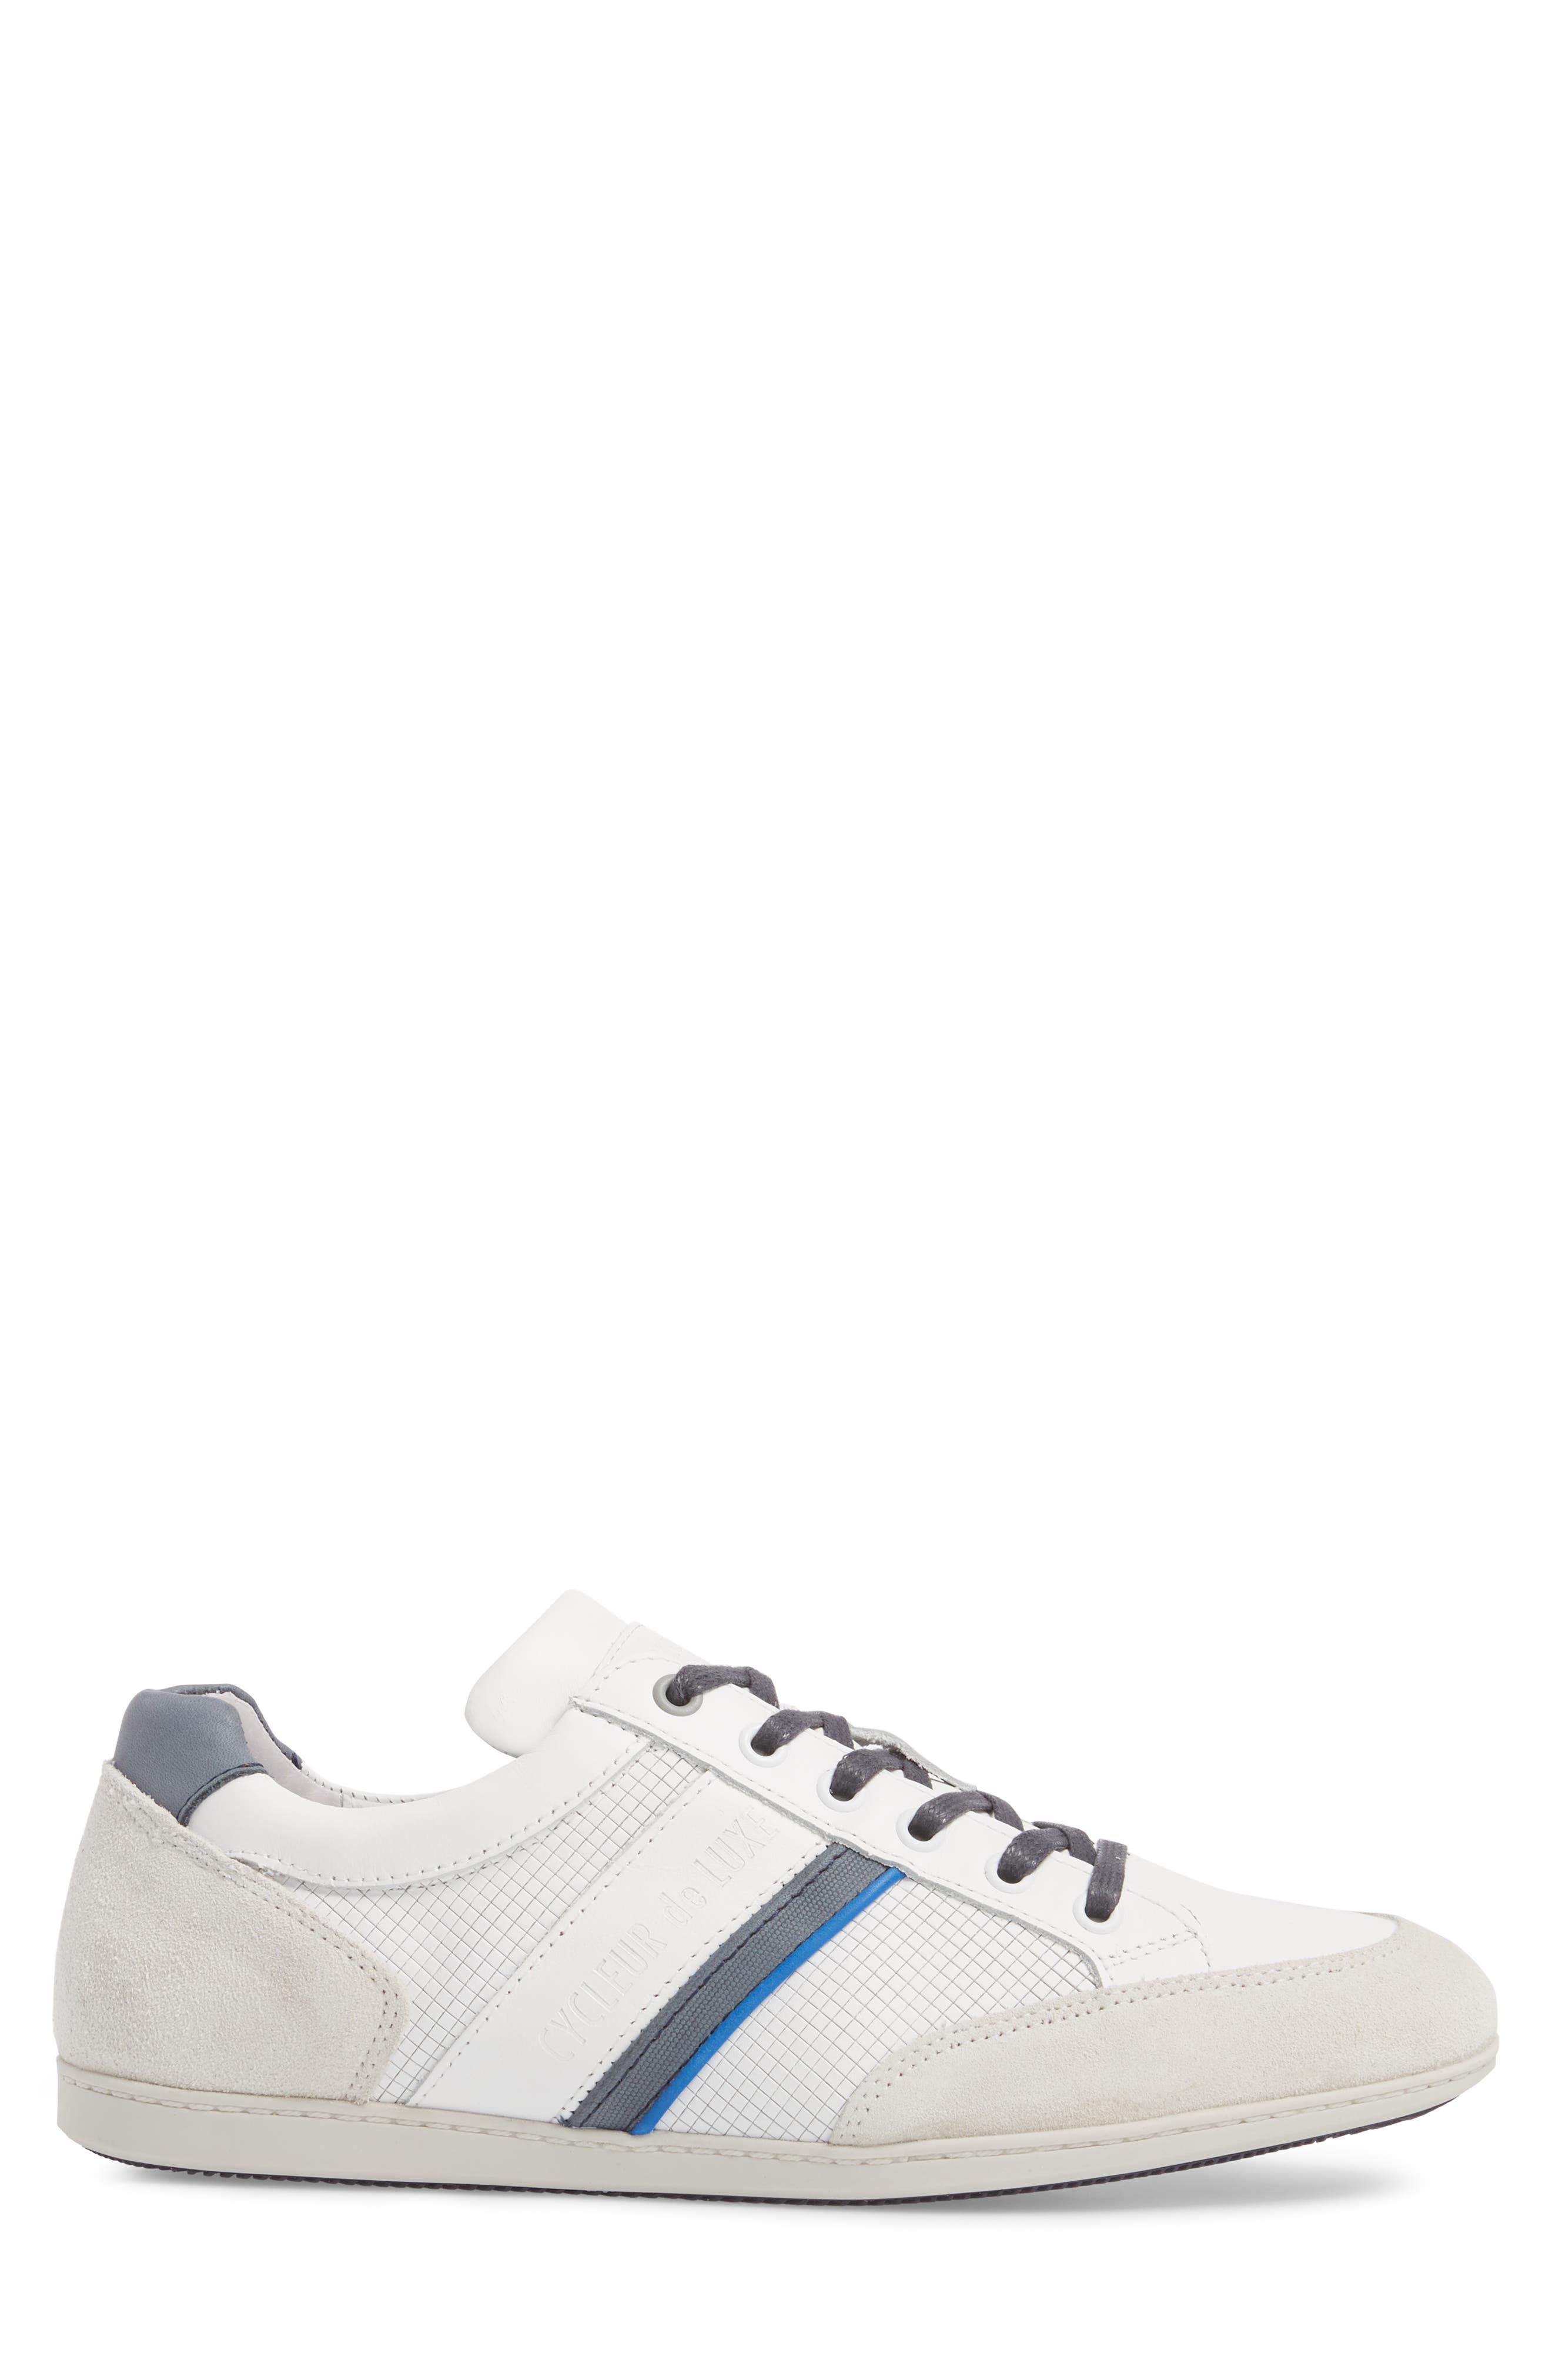 Bahamas Low Top Sneaker,                             Alternate thumbnail 3, color,                             Off White/ Navy Leather